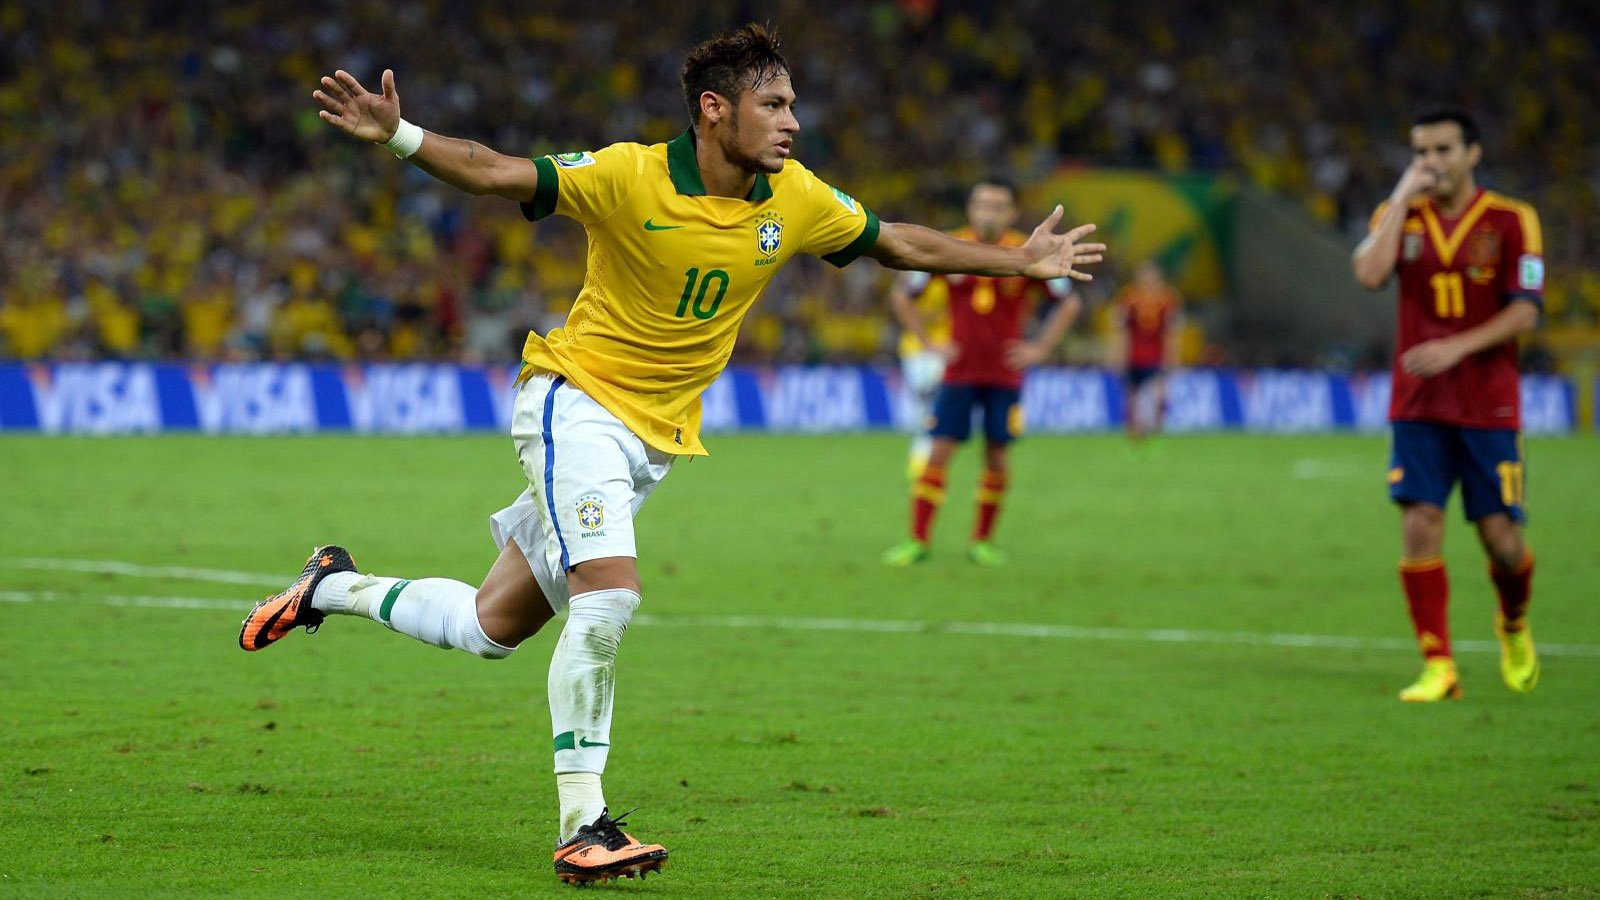 Neymar Jr Football Soccer Player Free Hd Celebrity Goals Mobile Desktop Bakground Download Wallpapers